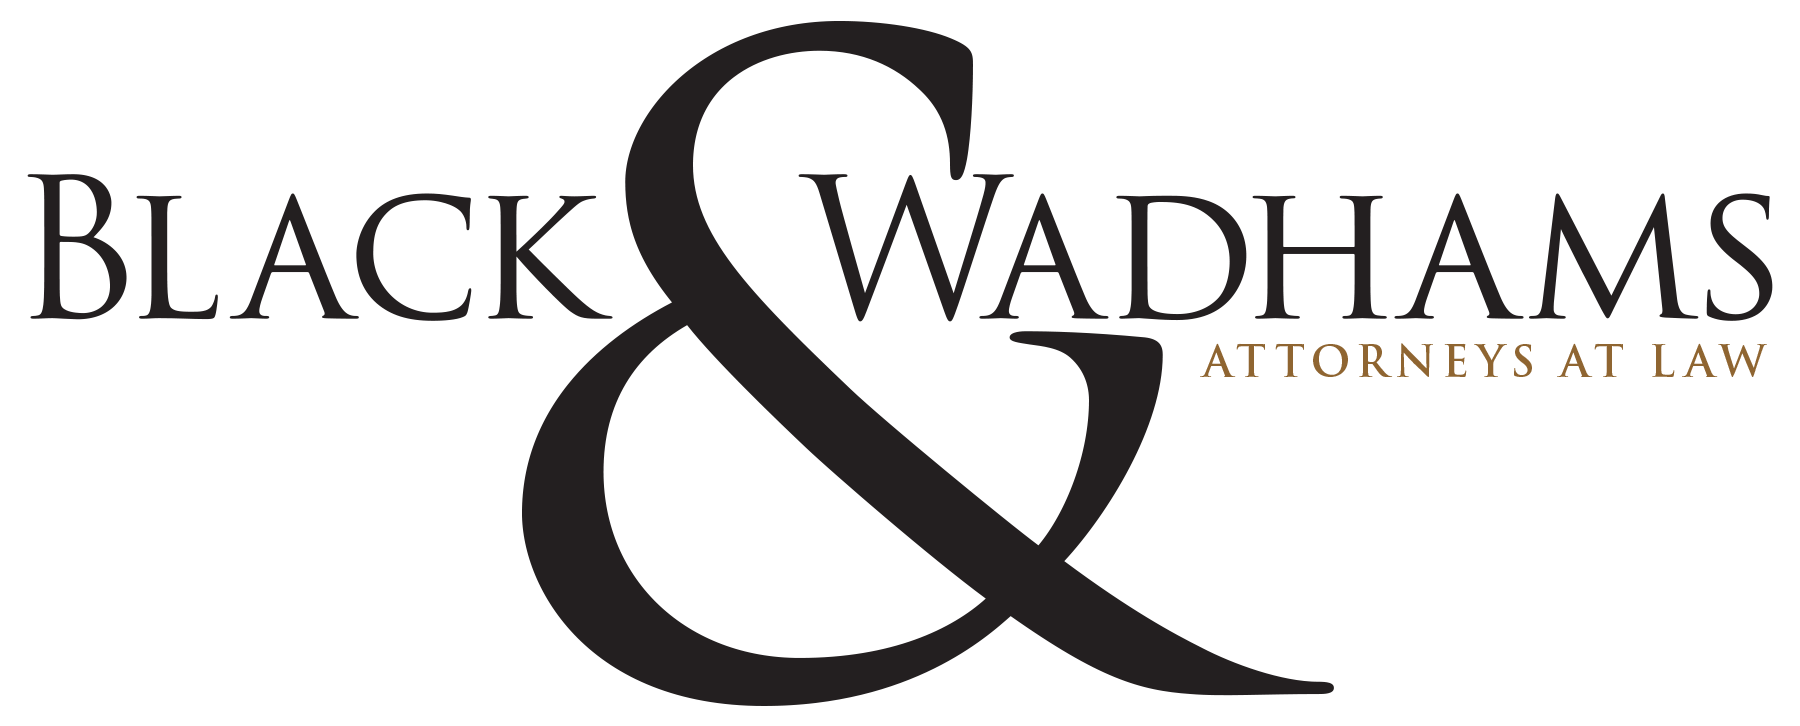 Black & Wadhams, Attorneys at Law